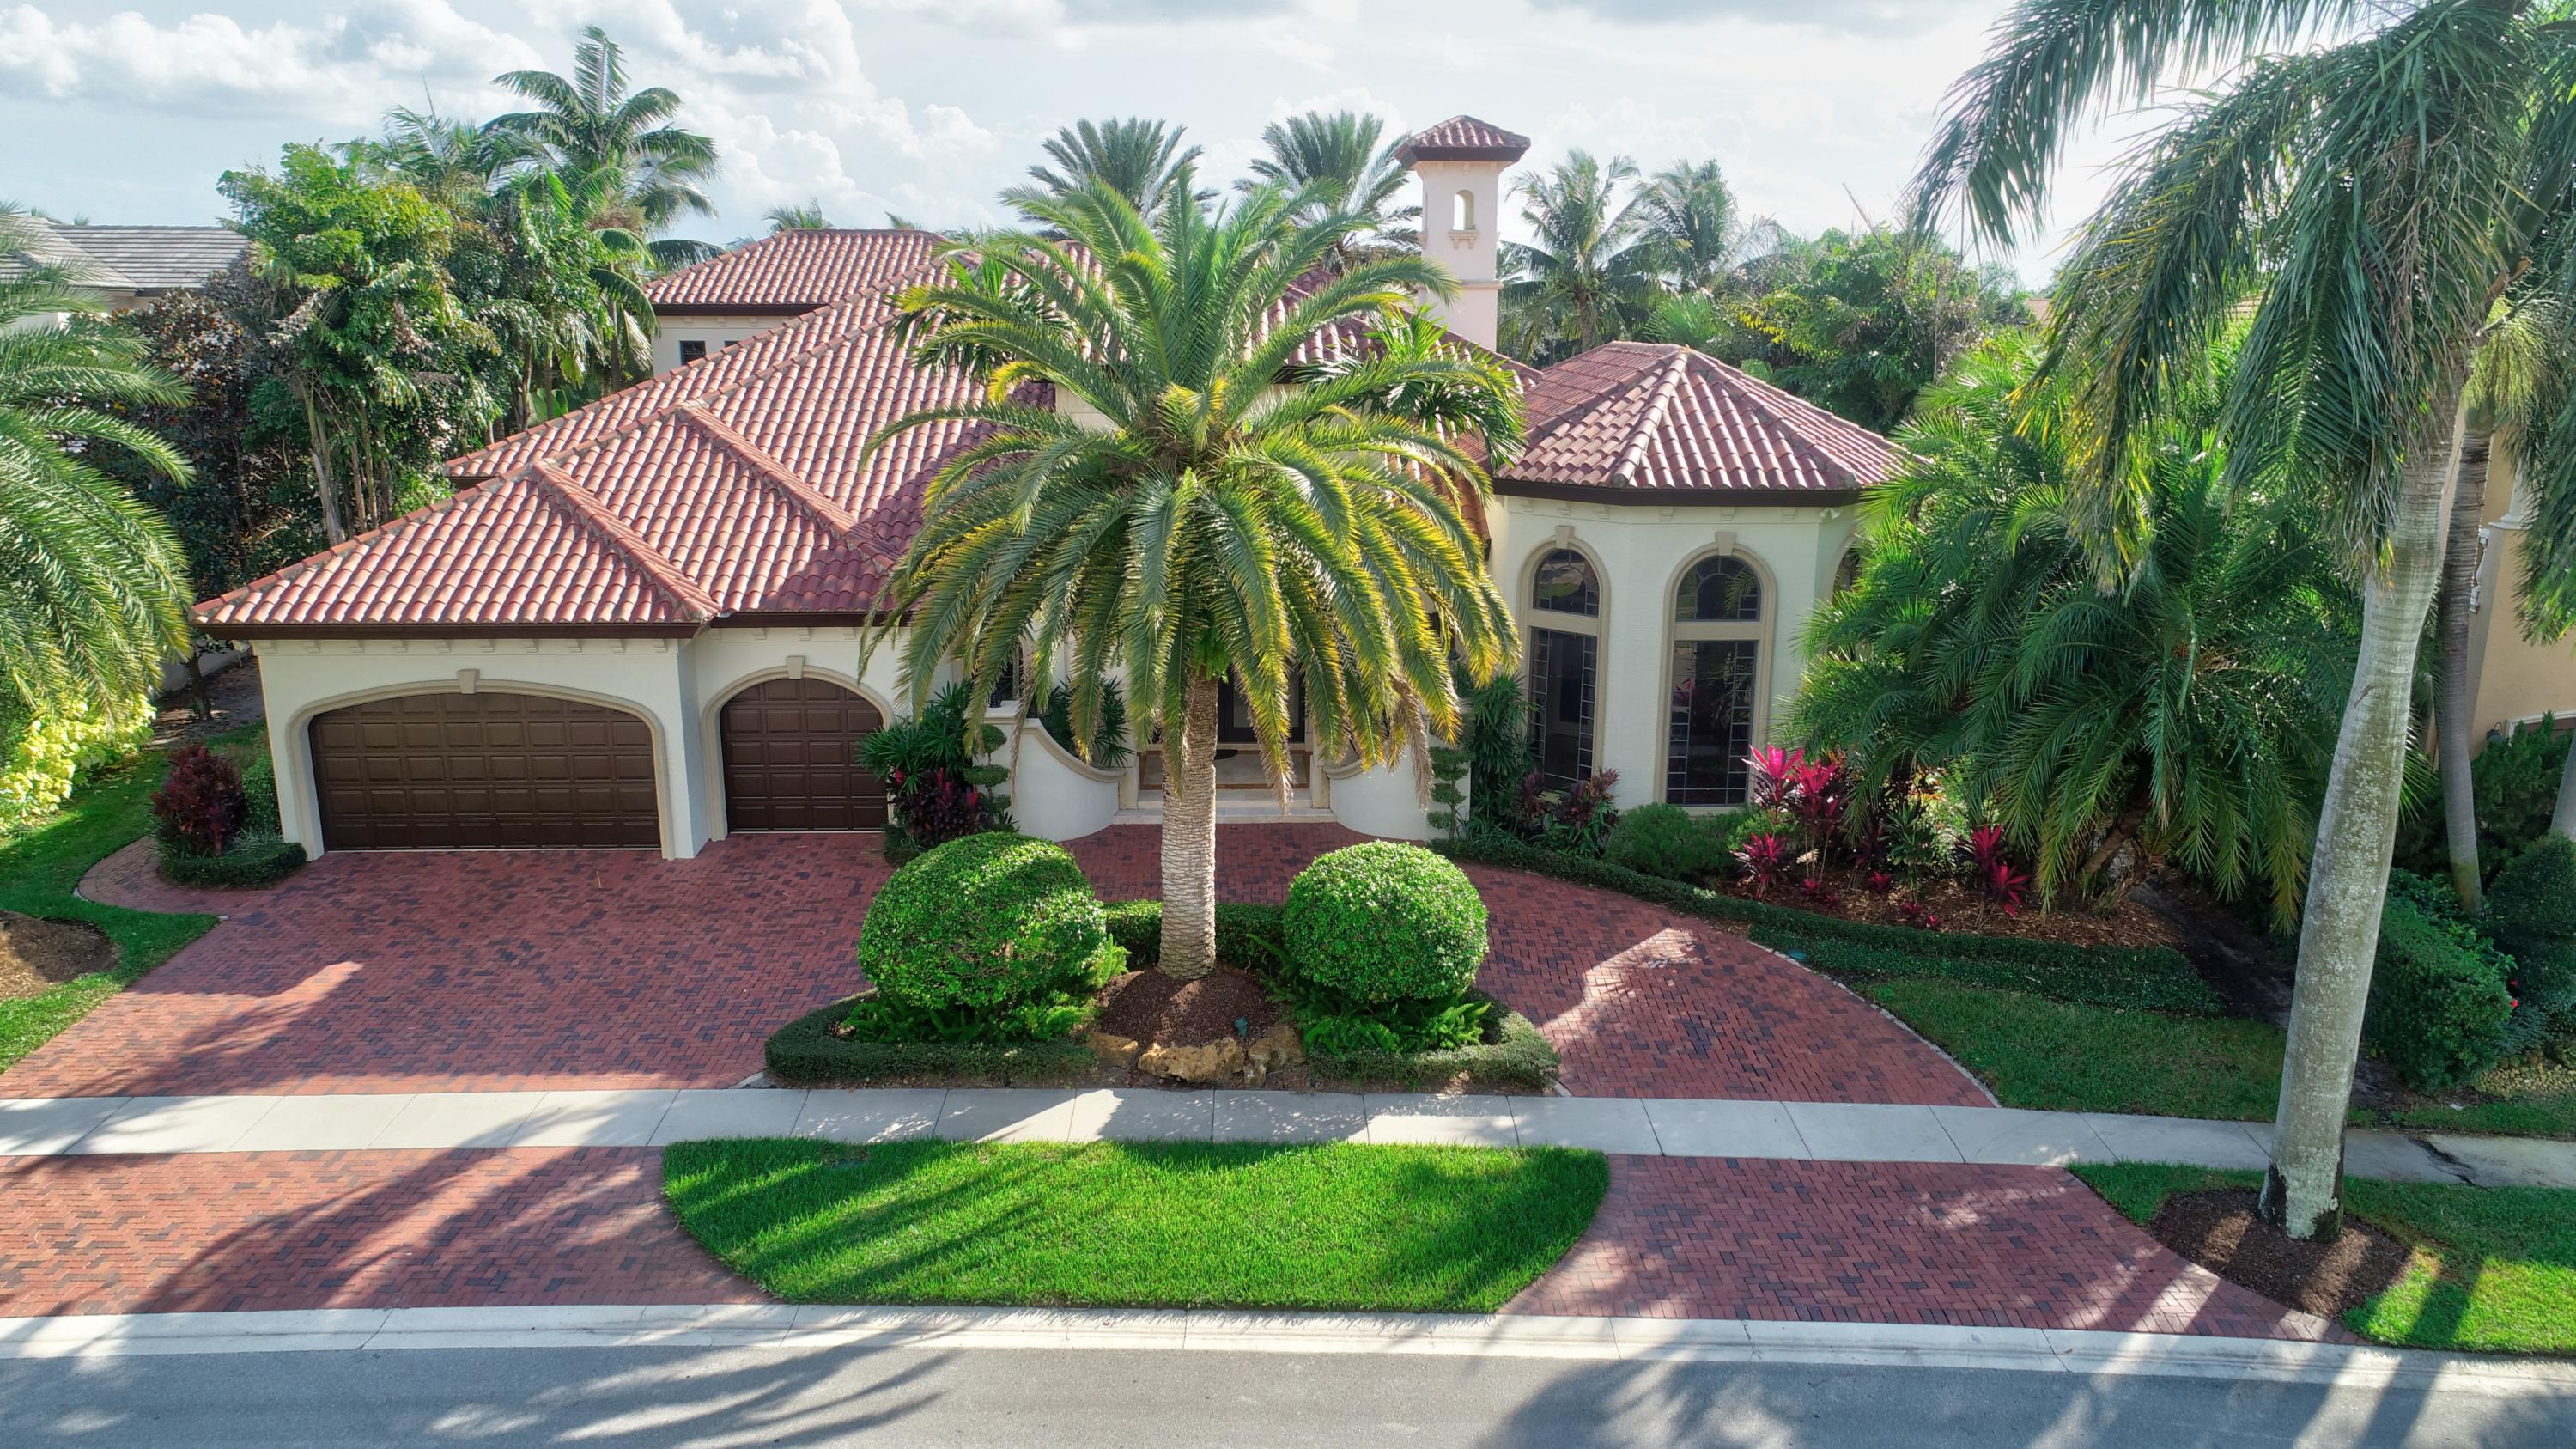 A masterpiece of classic Palm Beach design, this home is located in the exclusive enclave of DEL PRADO in MIZNER COUNTRY CLUB. Situated on a premier lot, this residence enjoys both serene golf and lake views. Resplendent in Old World details with 7700 total square feet, this spectacular home affords distinctive living and entertaining in unrivaled elegance and luxury. Extensive design elements include carved wood and stone columns, Venetian plastered walls, and custom stained glass accents. Lavish entertaining areas include a Grand Salon with fireplace and carved Mahogany bar, an elegant Dining Room with coffered ceiling, and a Billiard Room/Library with built-ins. The Family Room offers a beautiful custom built..... A masterpiece of classic Palm Beach design, this home is located in the exclusive enclave of DEL PRADO in MIZNER COUNTRY CLUB. Situated on a premier lot, this residence enjoys both serene golf and lake views. Resplendent in Old World details with 7700 total square feet, this spectacular home affords distinctive living and entertaining in unrivaled elegance and luxury. Extensive design elements include carved wood and stone columns, Venetian plastered walls, and custom stained glass accents. Lavish entertaining areas include a Grand Salon with fireplace and carved Mahogany bar, an elegant Dining Room with coffered ceiling, and a Billiard Room/Library with built-ins. The Family Room offers a beautiful custom built Media/Entertainment center. An expertly designed Kitchen features the finest in appliances, and offers a large pantry. A luxurious first floor Master Suite offers golf course views, and is grand in size with a sitting room and 2 custom closets. A sumptuous Master Bath is a special retreat with an ultra large Jacuzzi tub and two separate showers & commode spaces. Four additional en-suite Bedrooms are well appointed. Outdoors, an enchanting setting of mature and tropical landscaping provides for both formal and casual entertaining. A covered patio